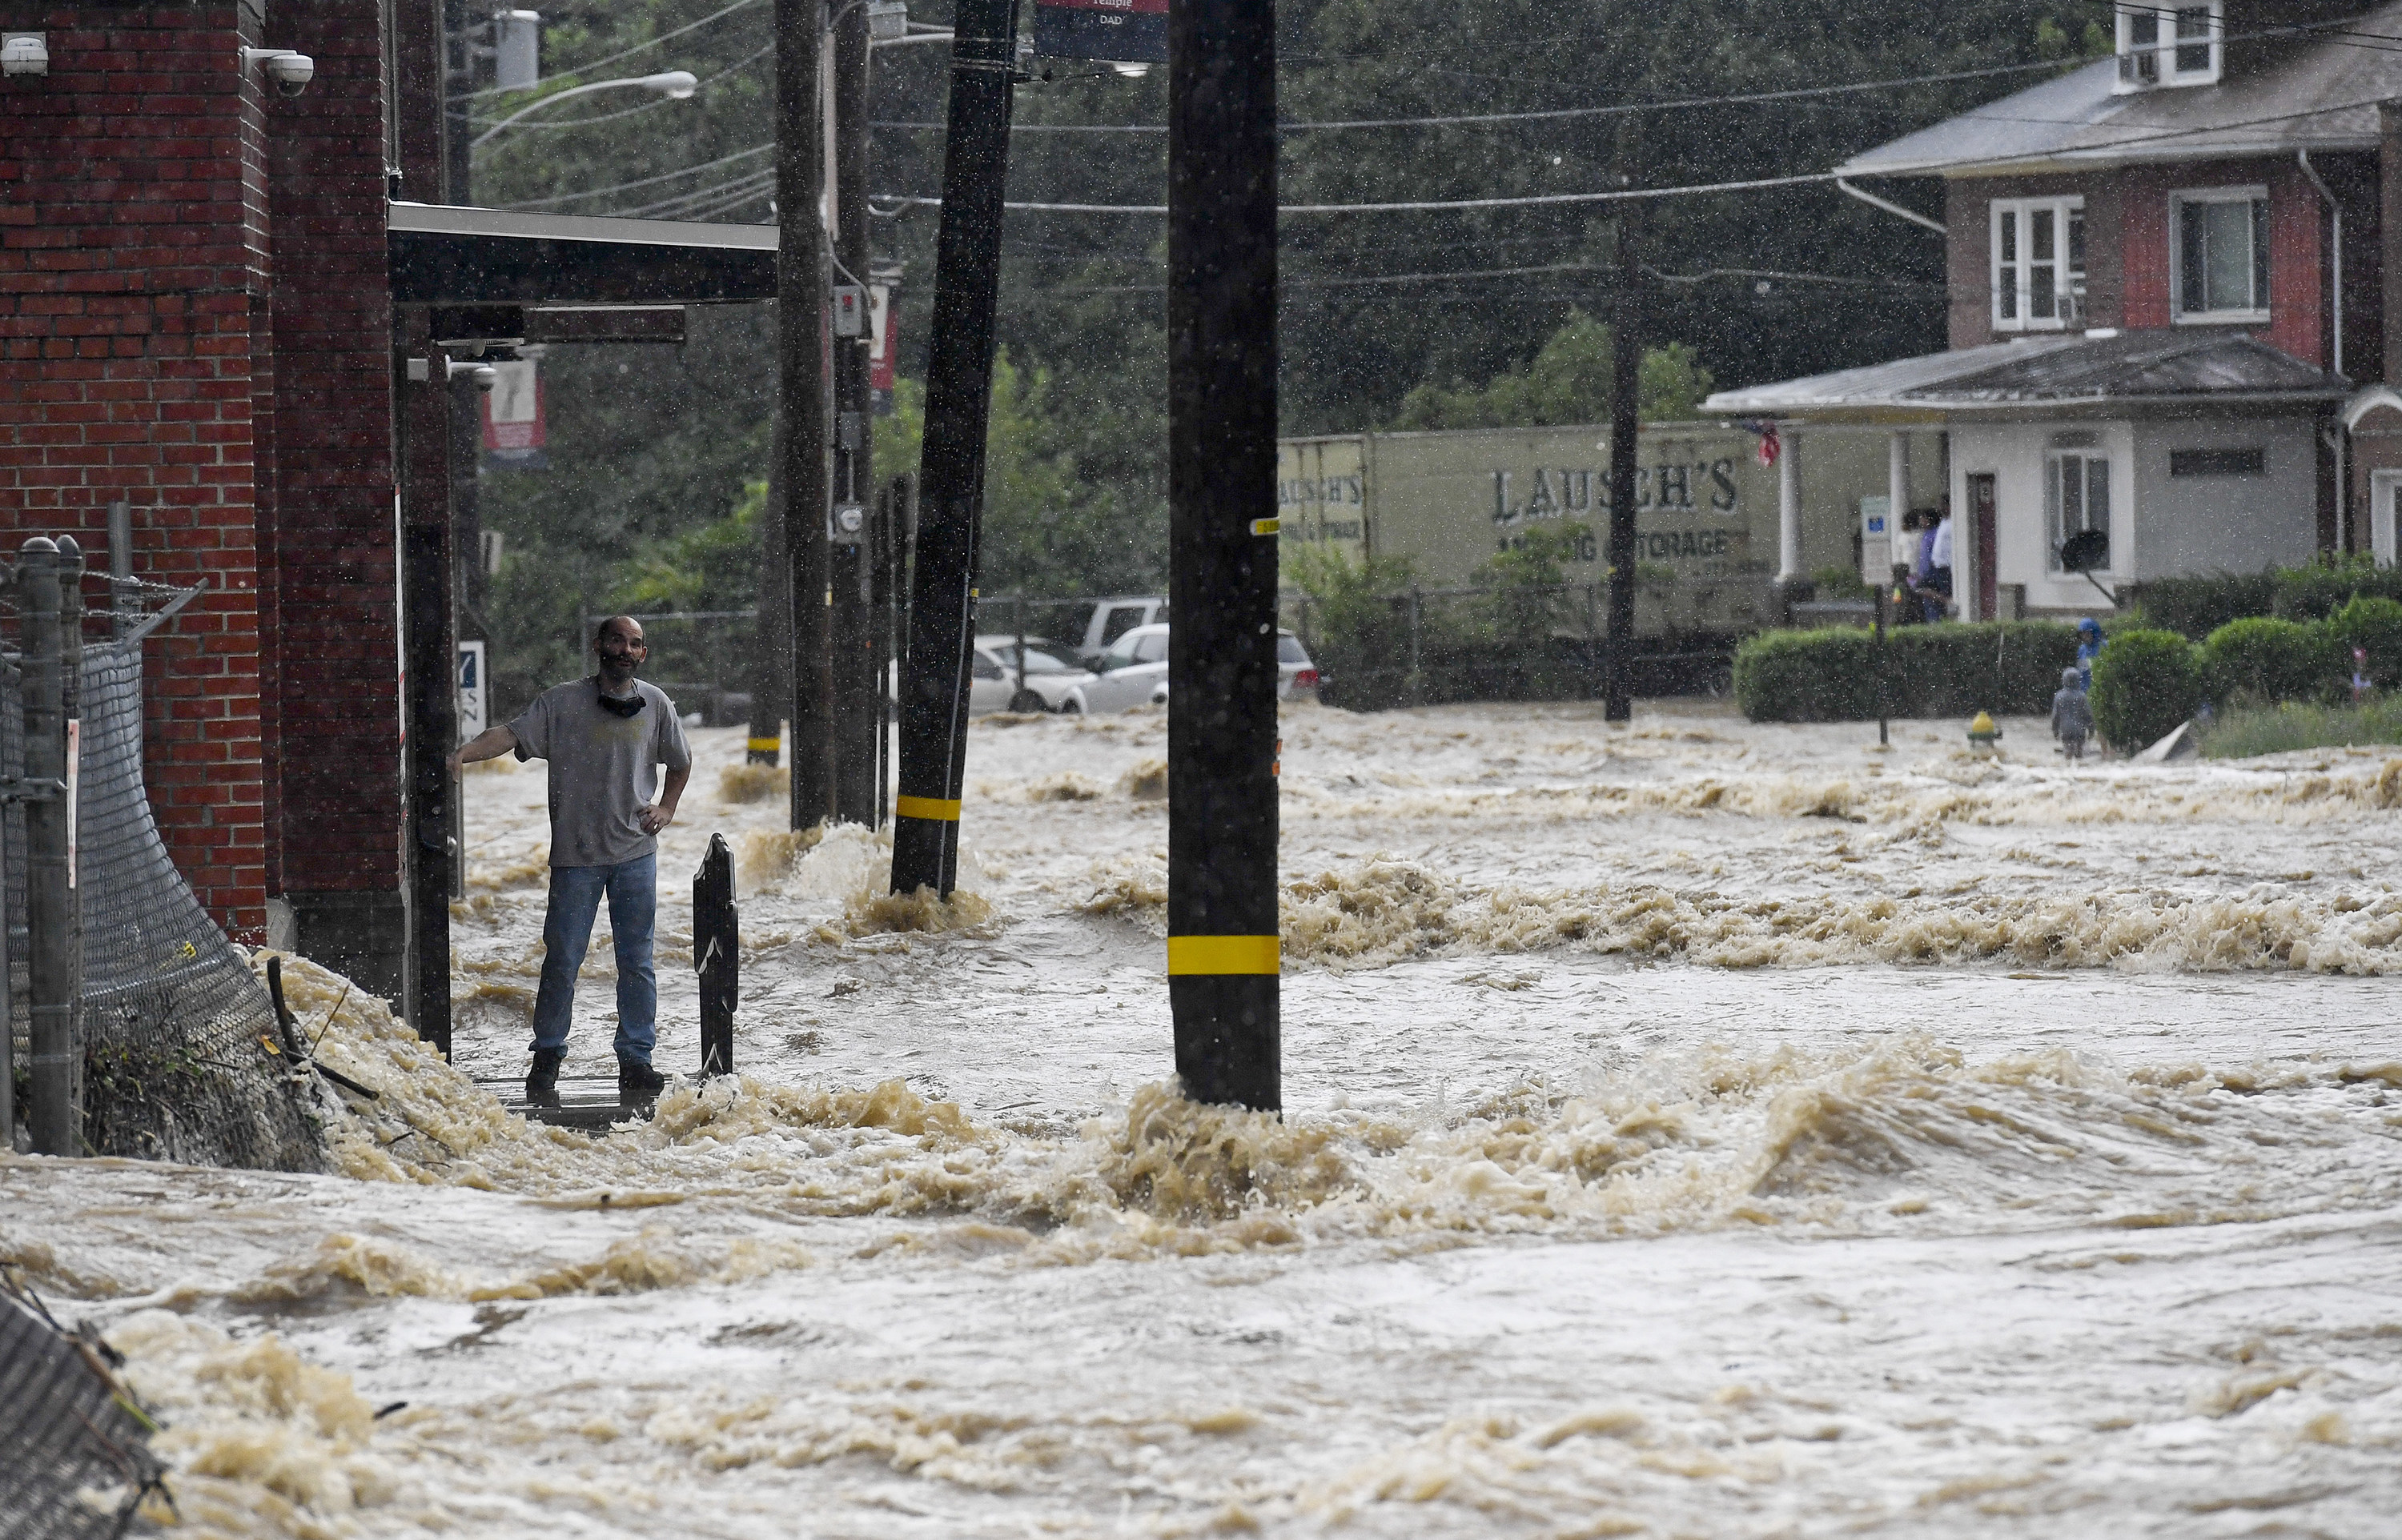 A man stands watching choppy muddy water come down the street